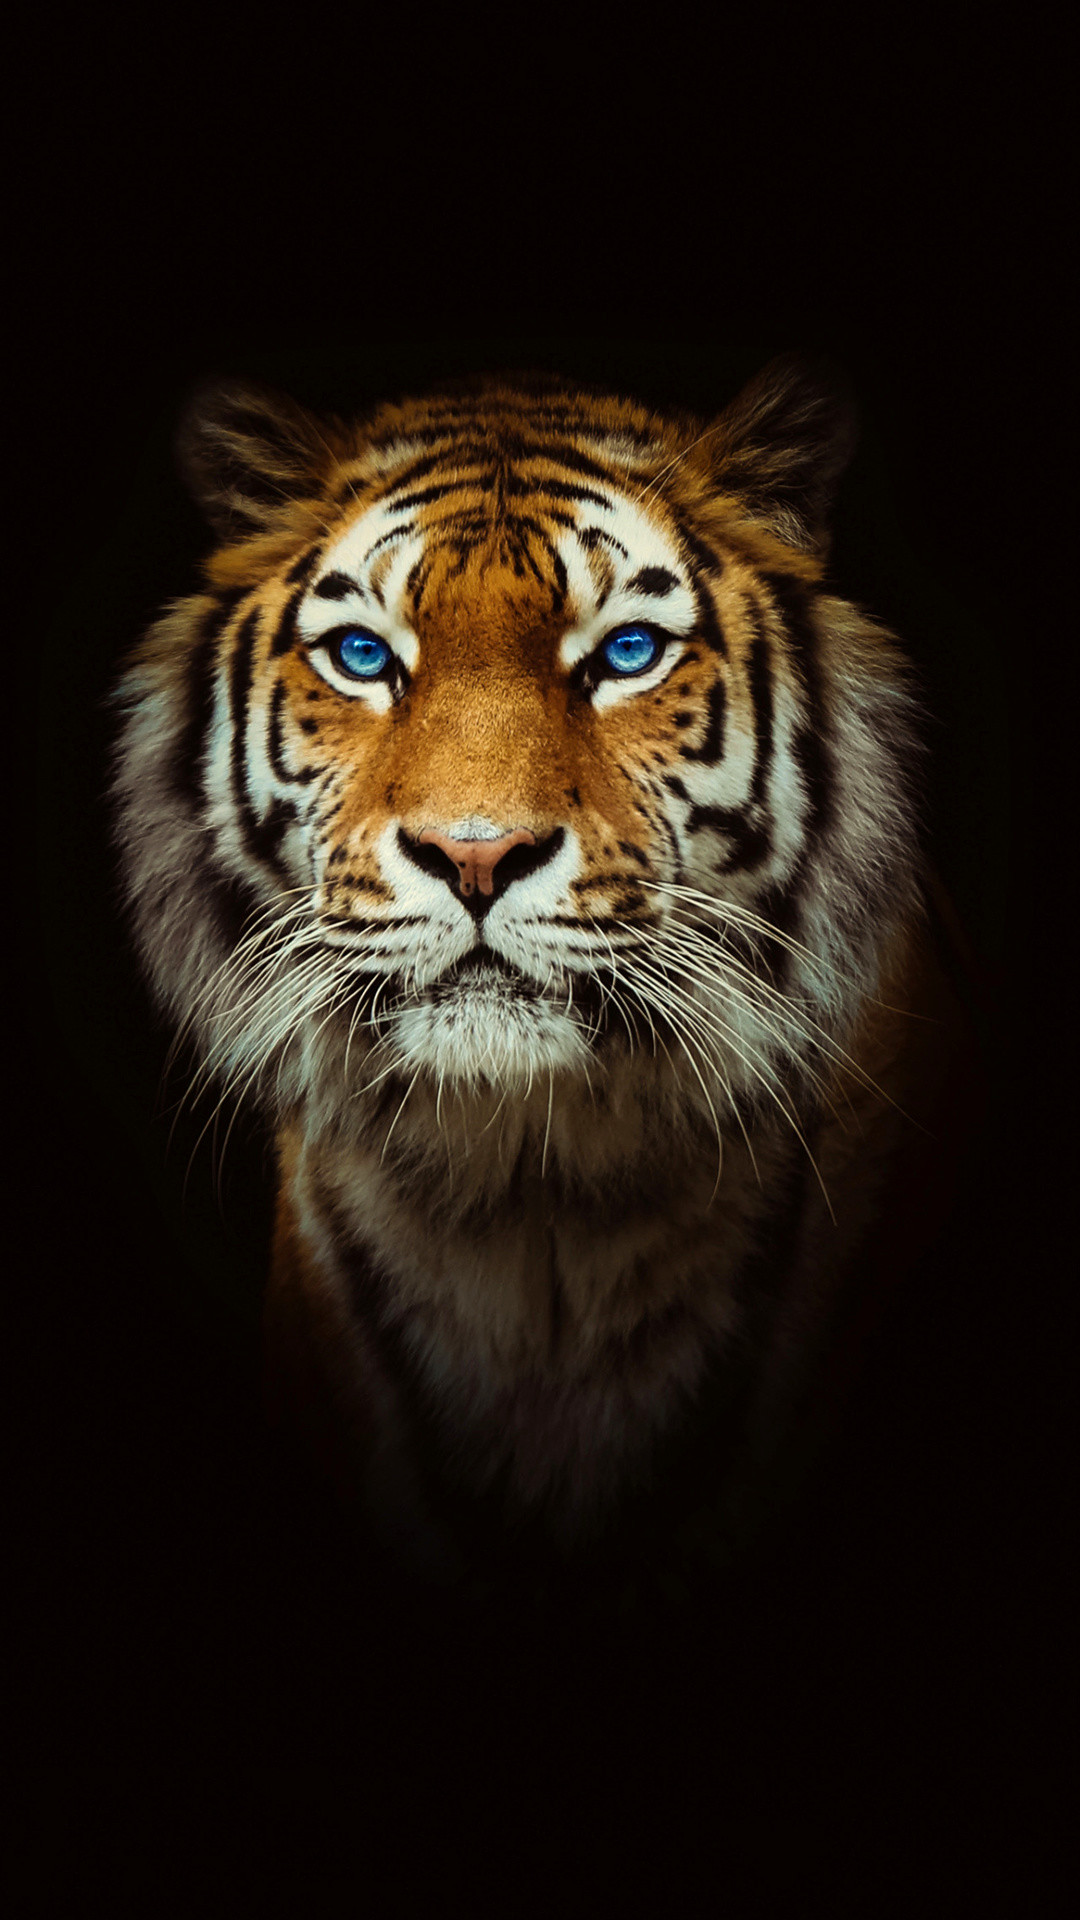 Tiger Hd Wallpaper 81 Images